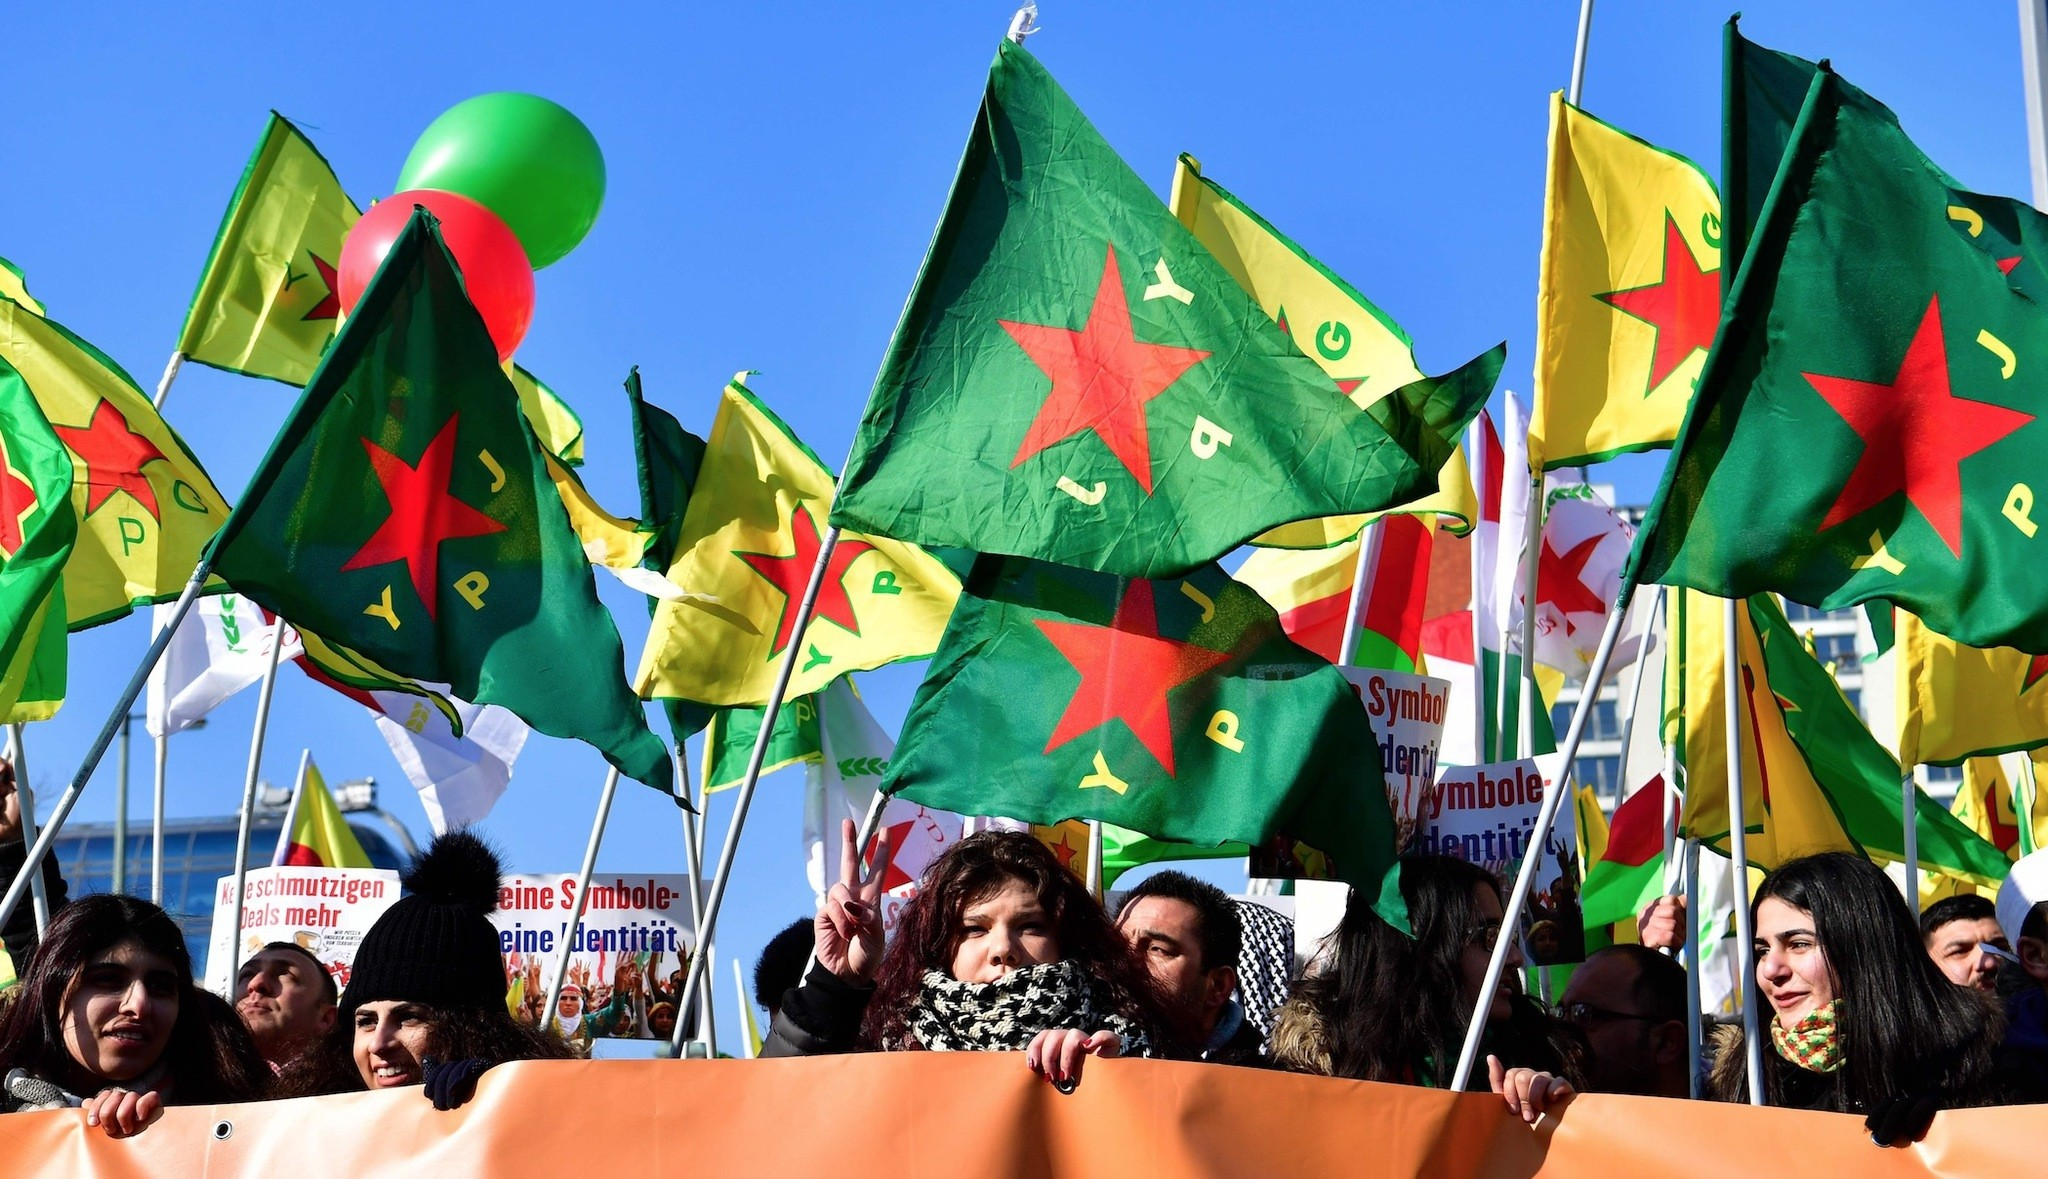 Protersters hold flags of the PKKu2019s Syrian affiliate, the Peopleu2019s Protection Units (YPG), and of its female branch, the Womenu2019s Protection Units (YPJ), during a demonstration in Berlin, Germany, on March 3.